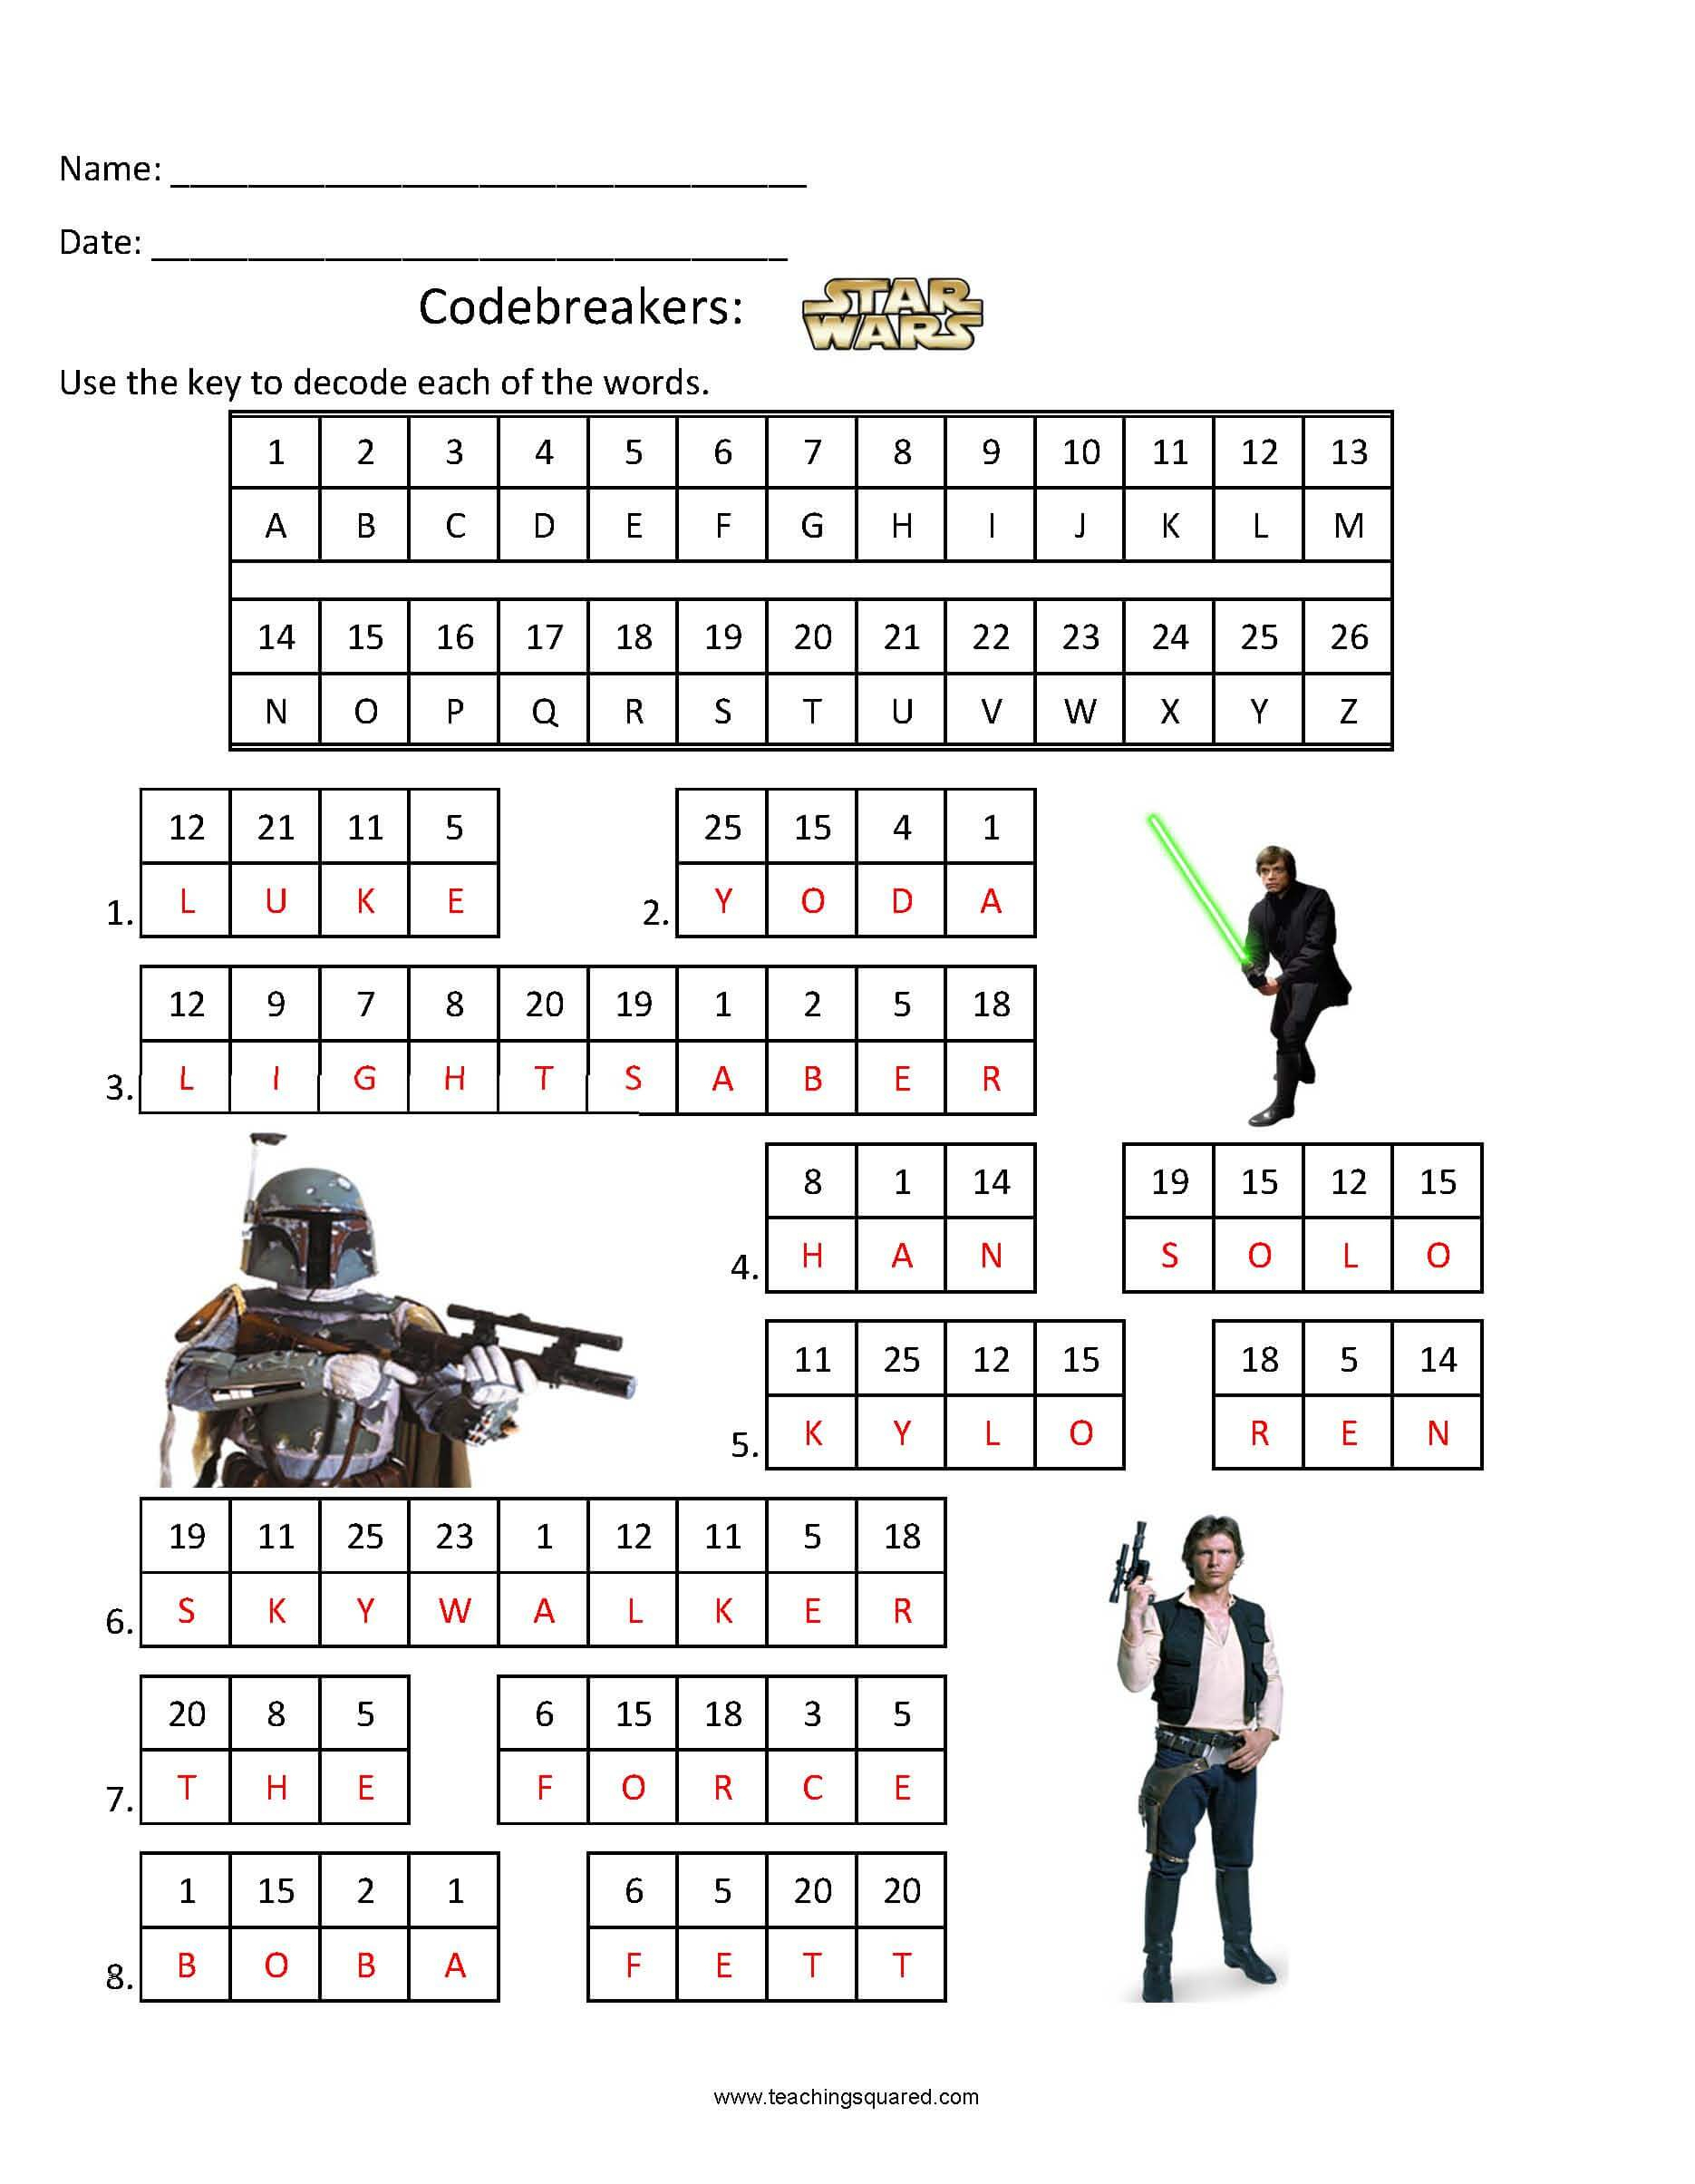 Codebreakers- Star Wars 1 - Teaching Squared - Star Wars Crossword Puzzle Printable